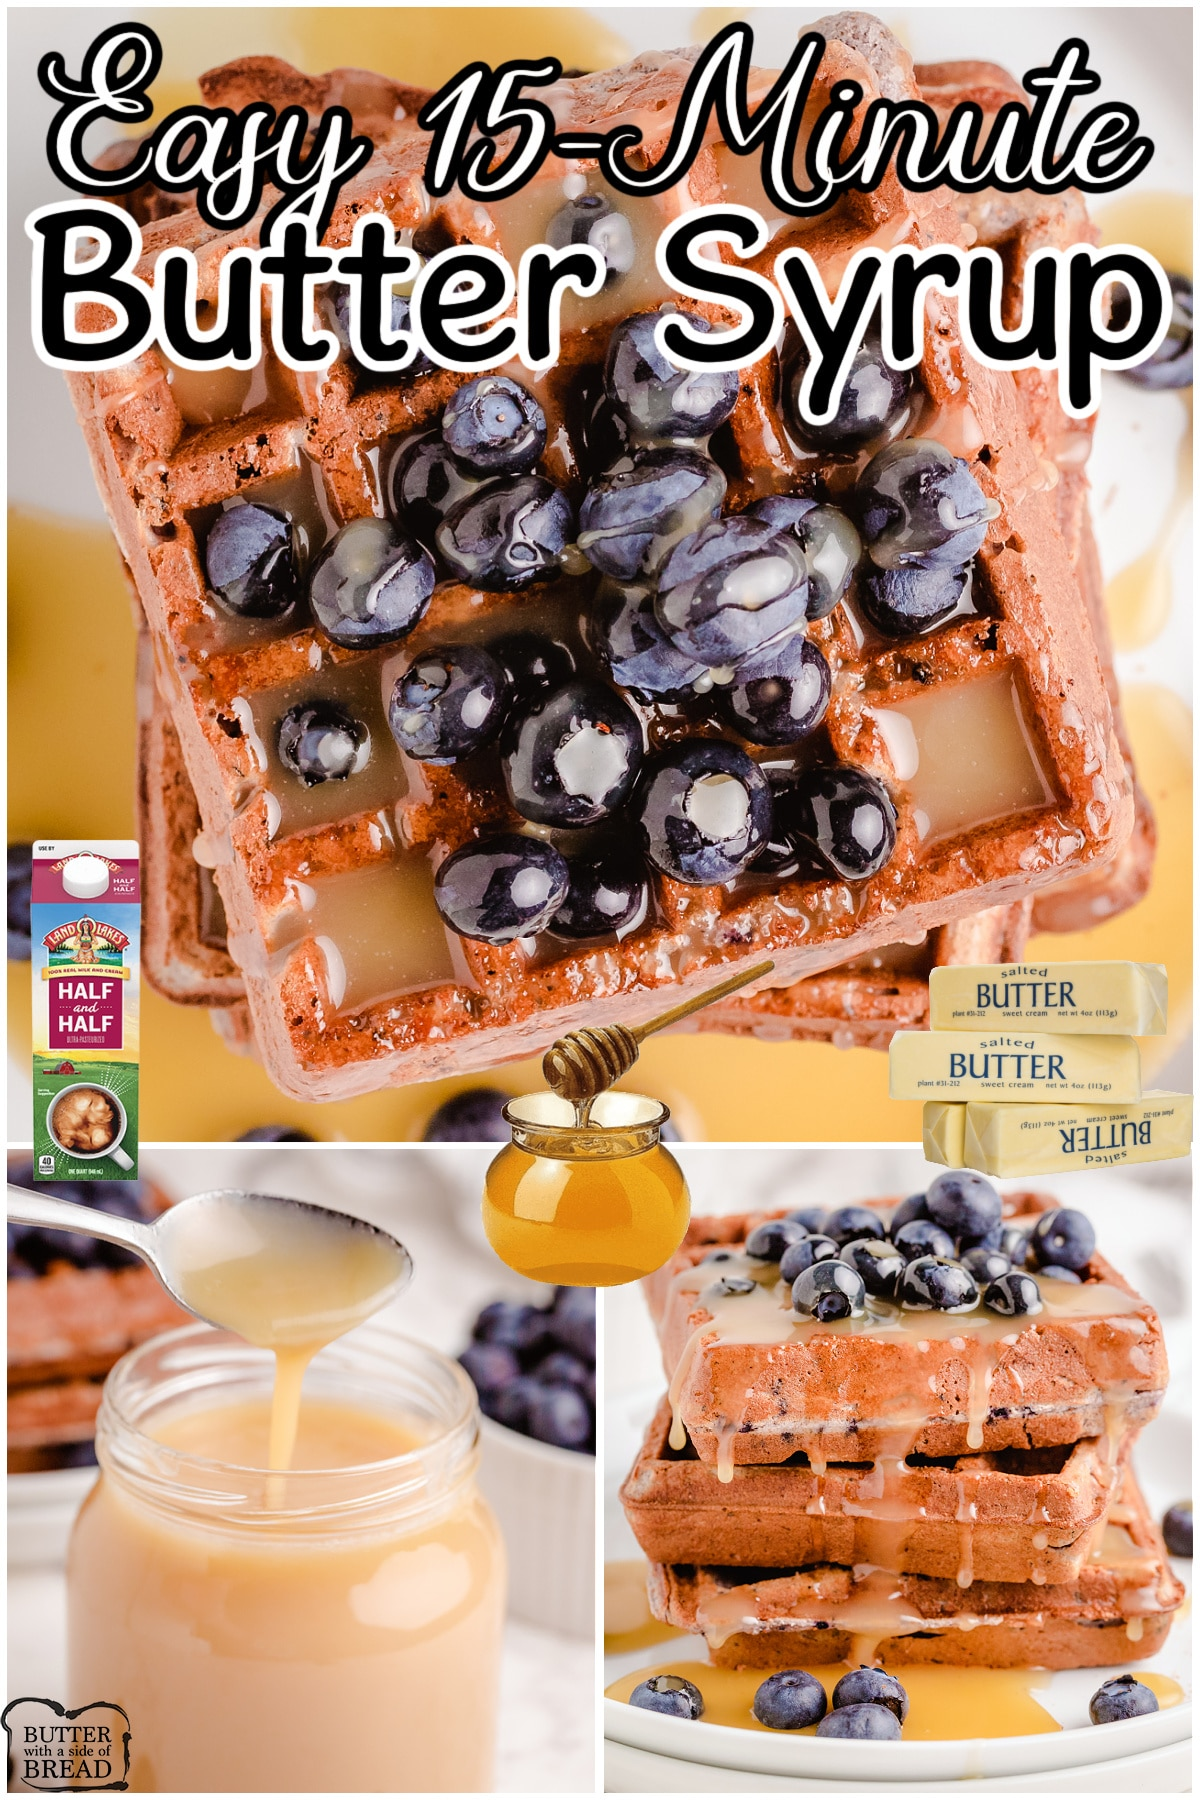 butter syrup on waffles with blueberries